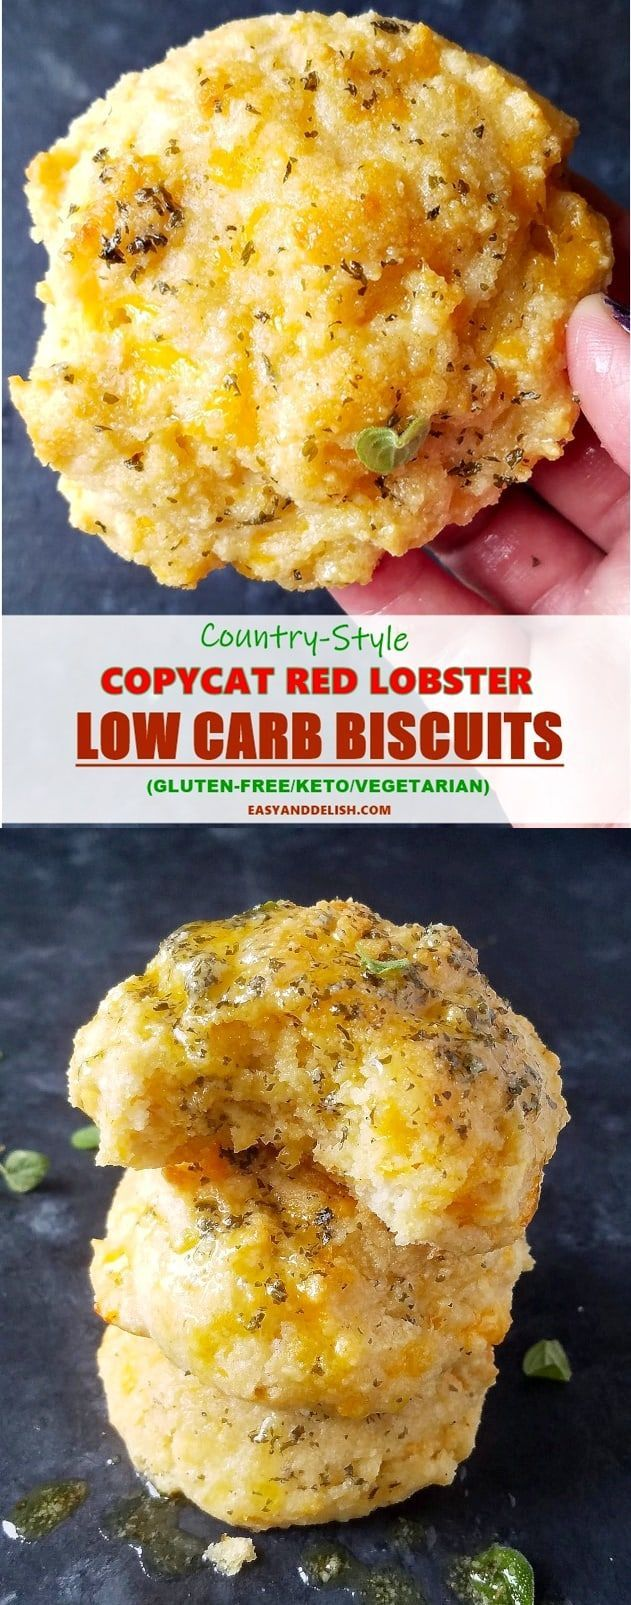 Copycat Red Lobster Low Carb Biscuits